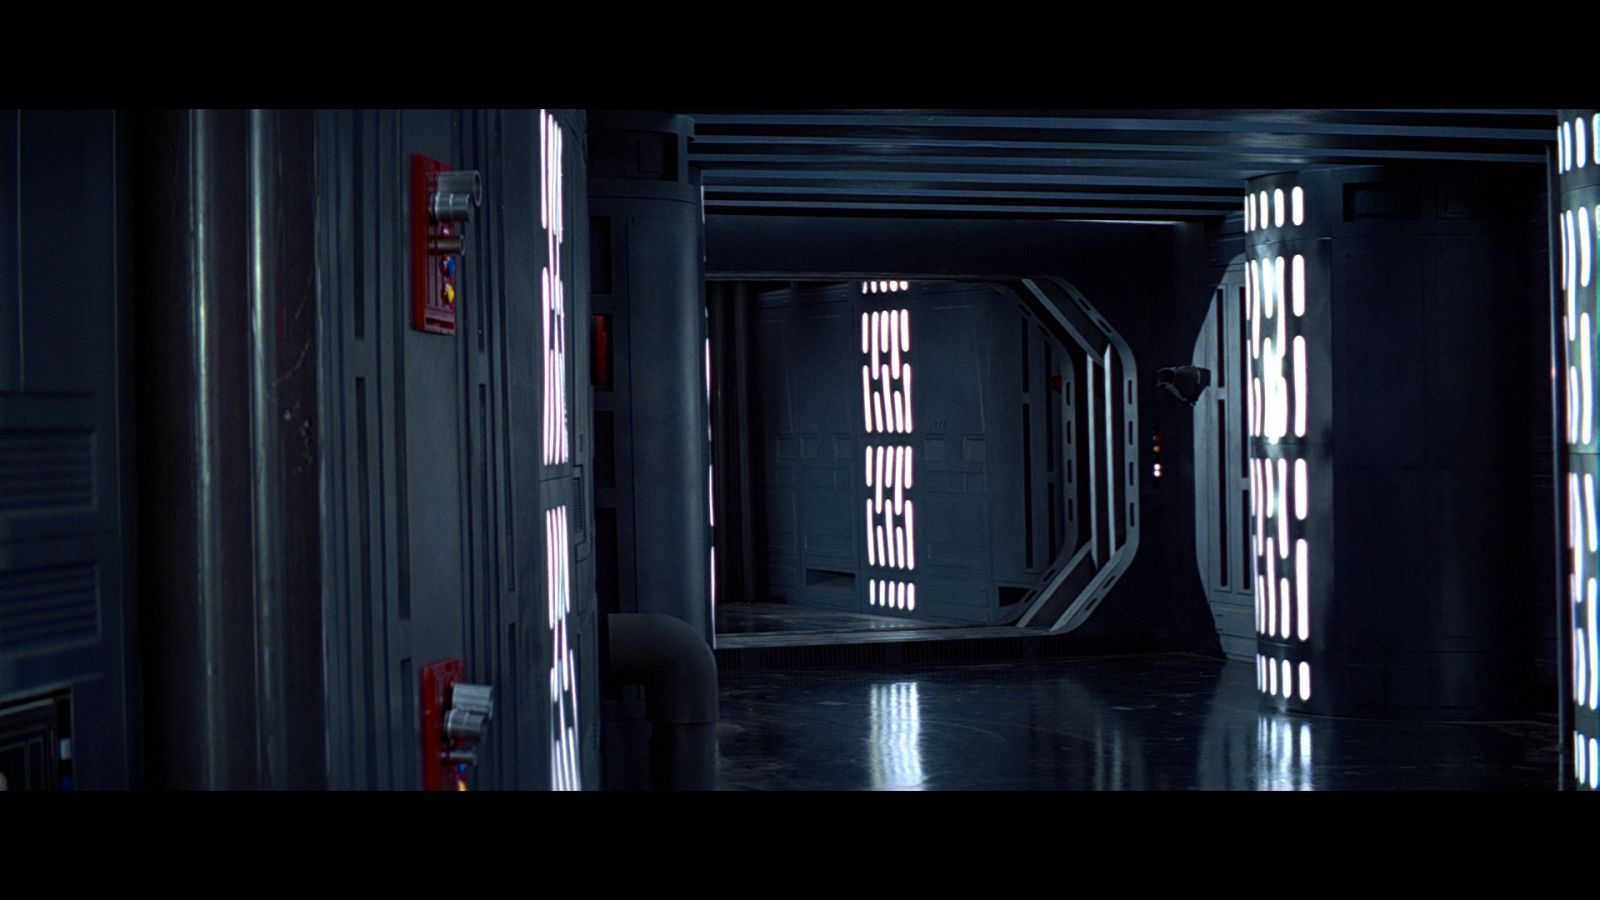 Star Wars A New Hope Bluray Capture 03-22.jpg